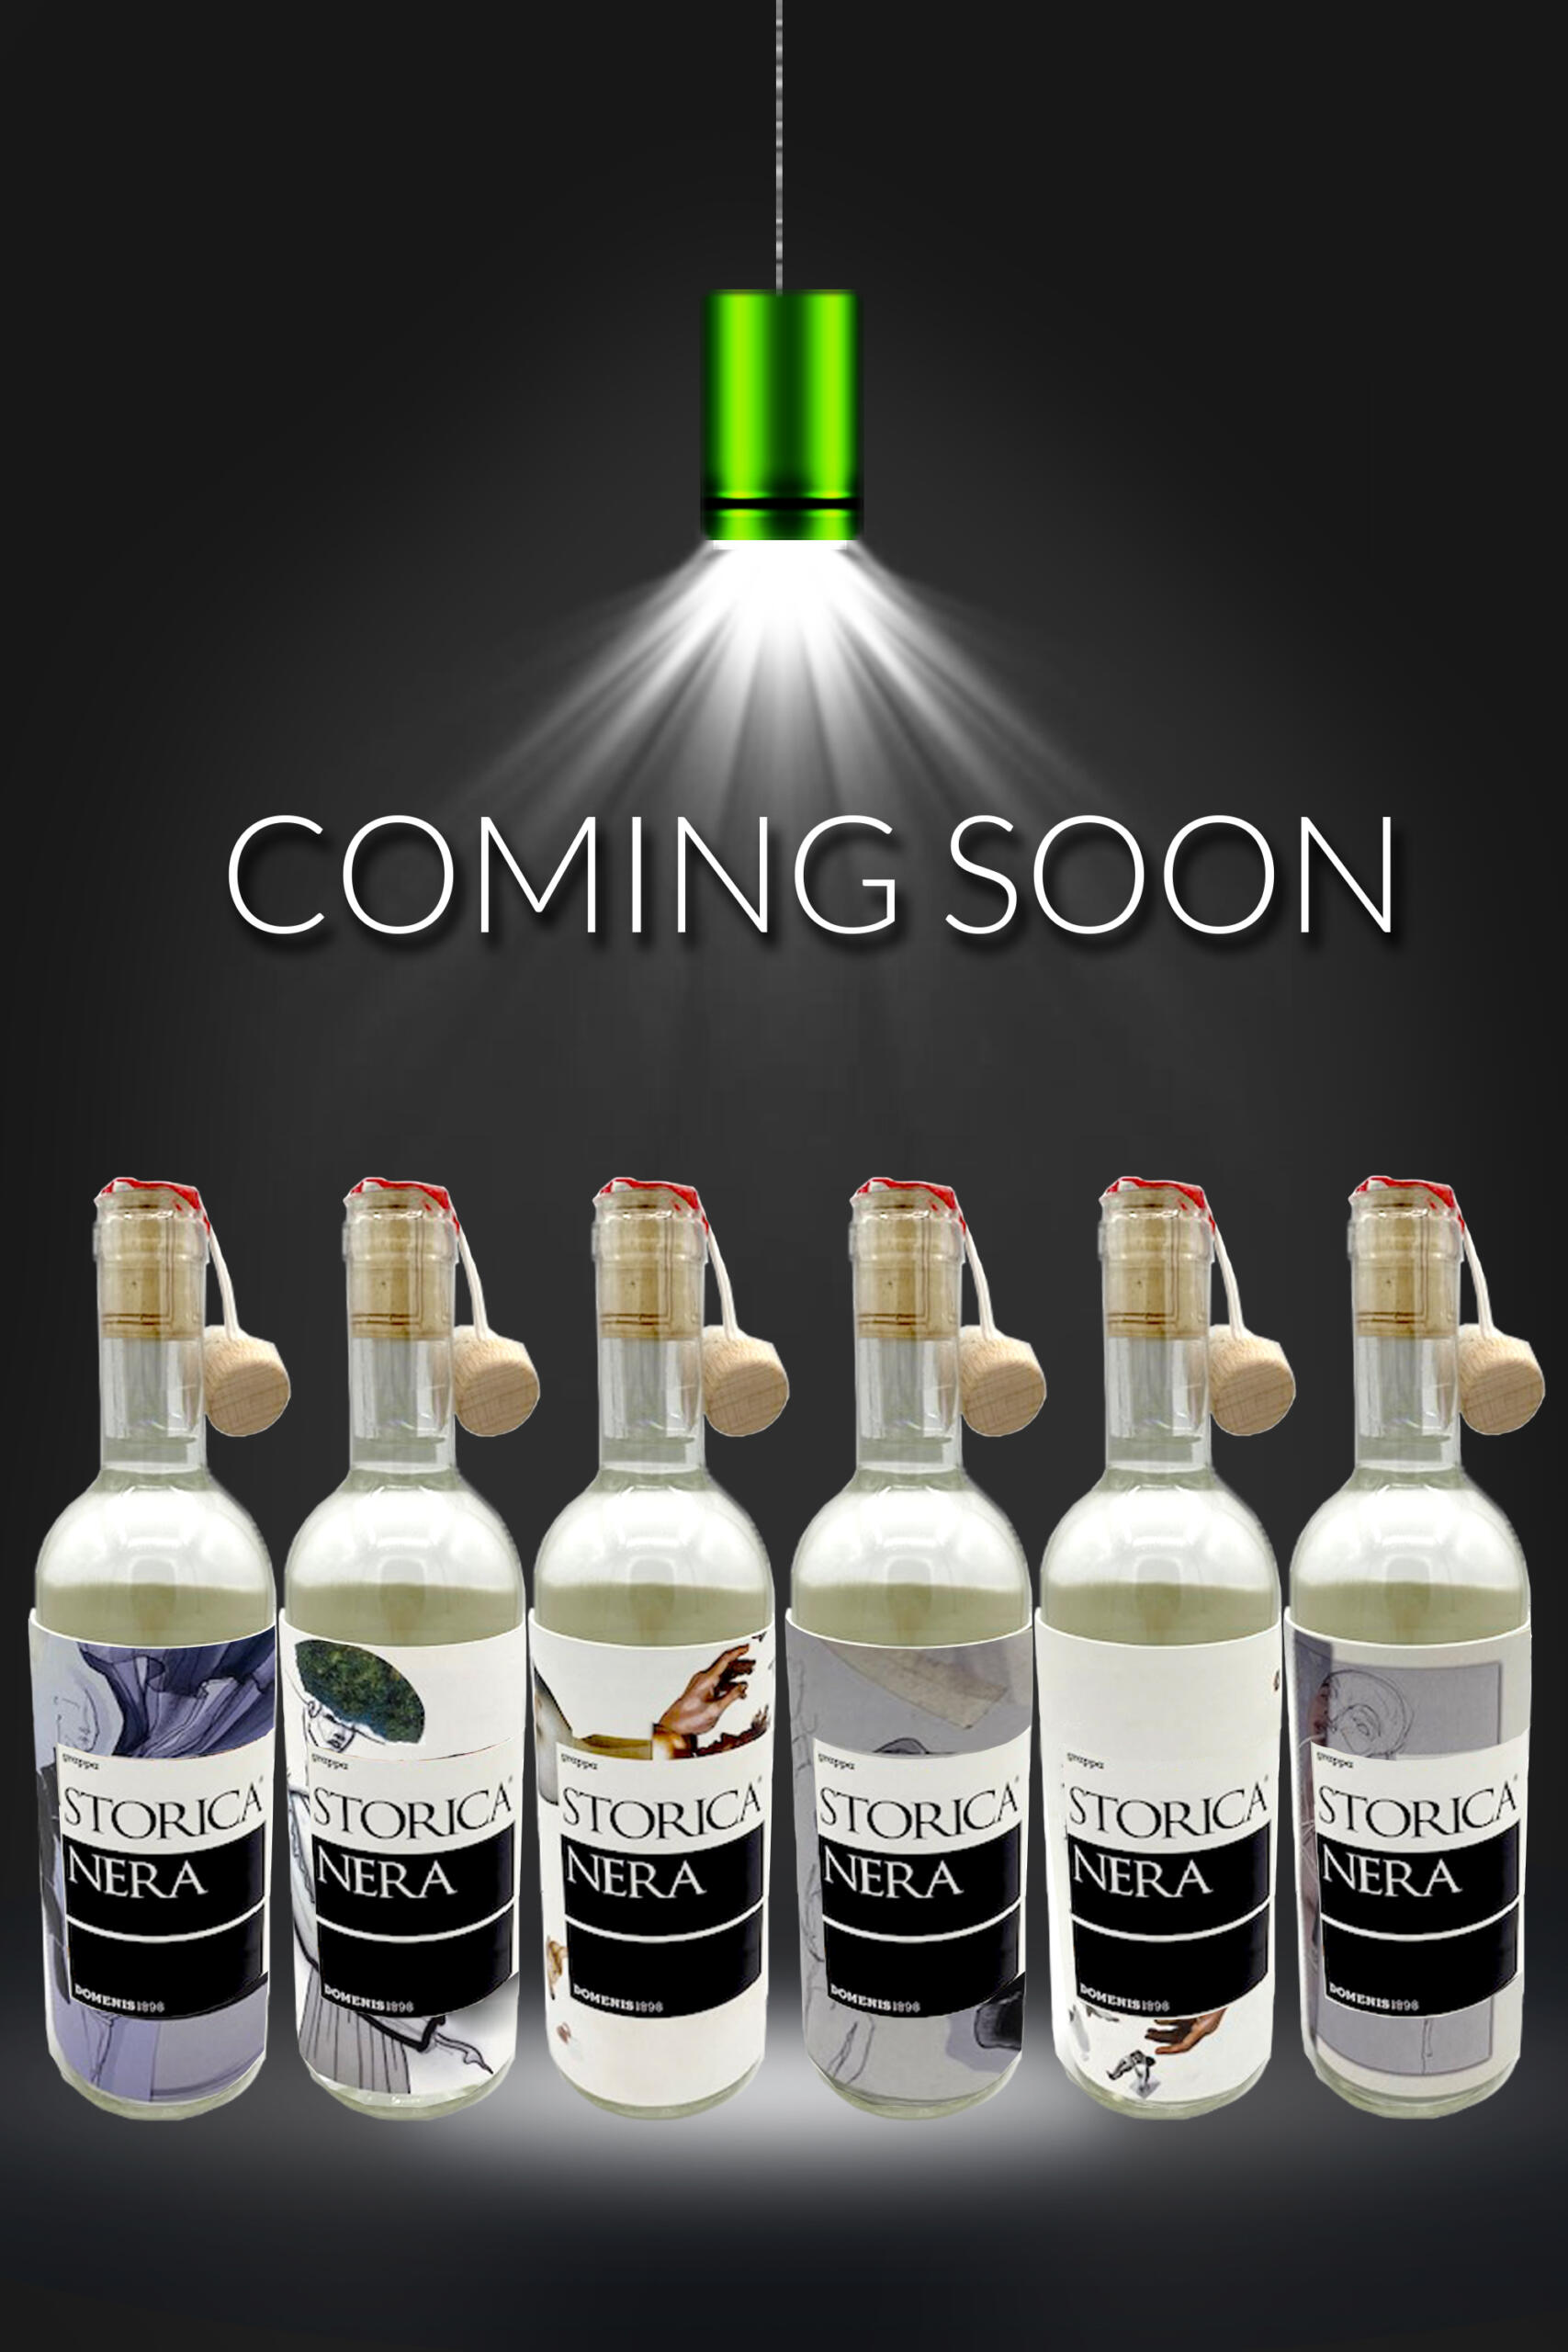 Storica Nera Special Edition is coming!